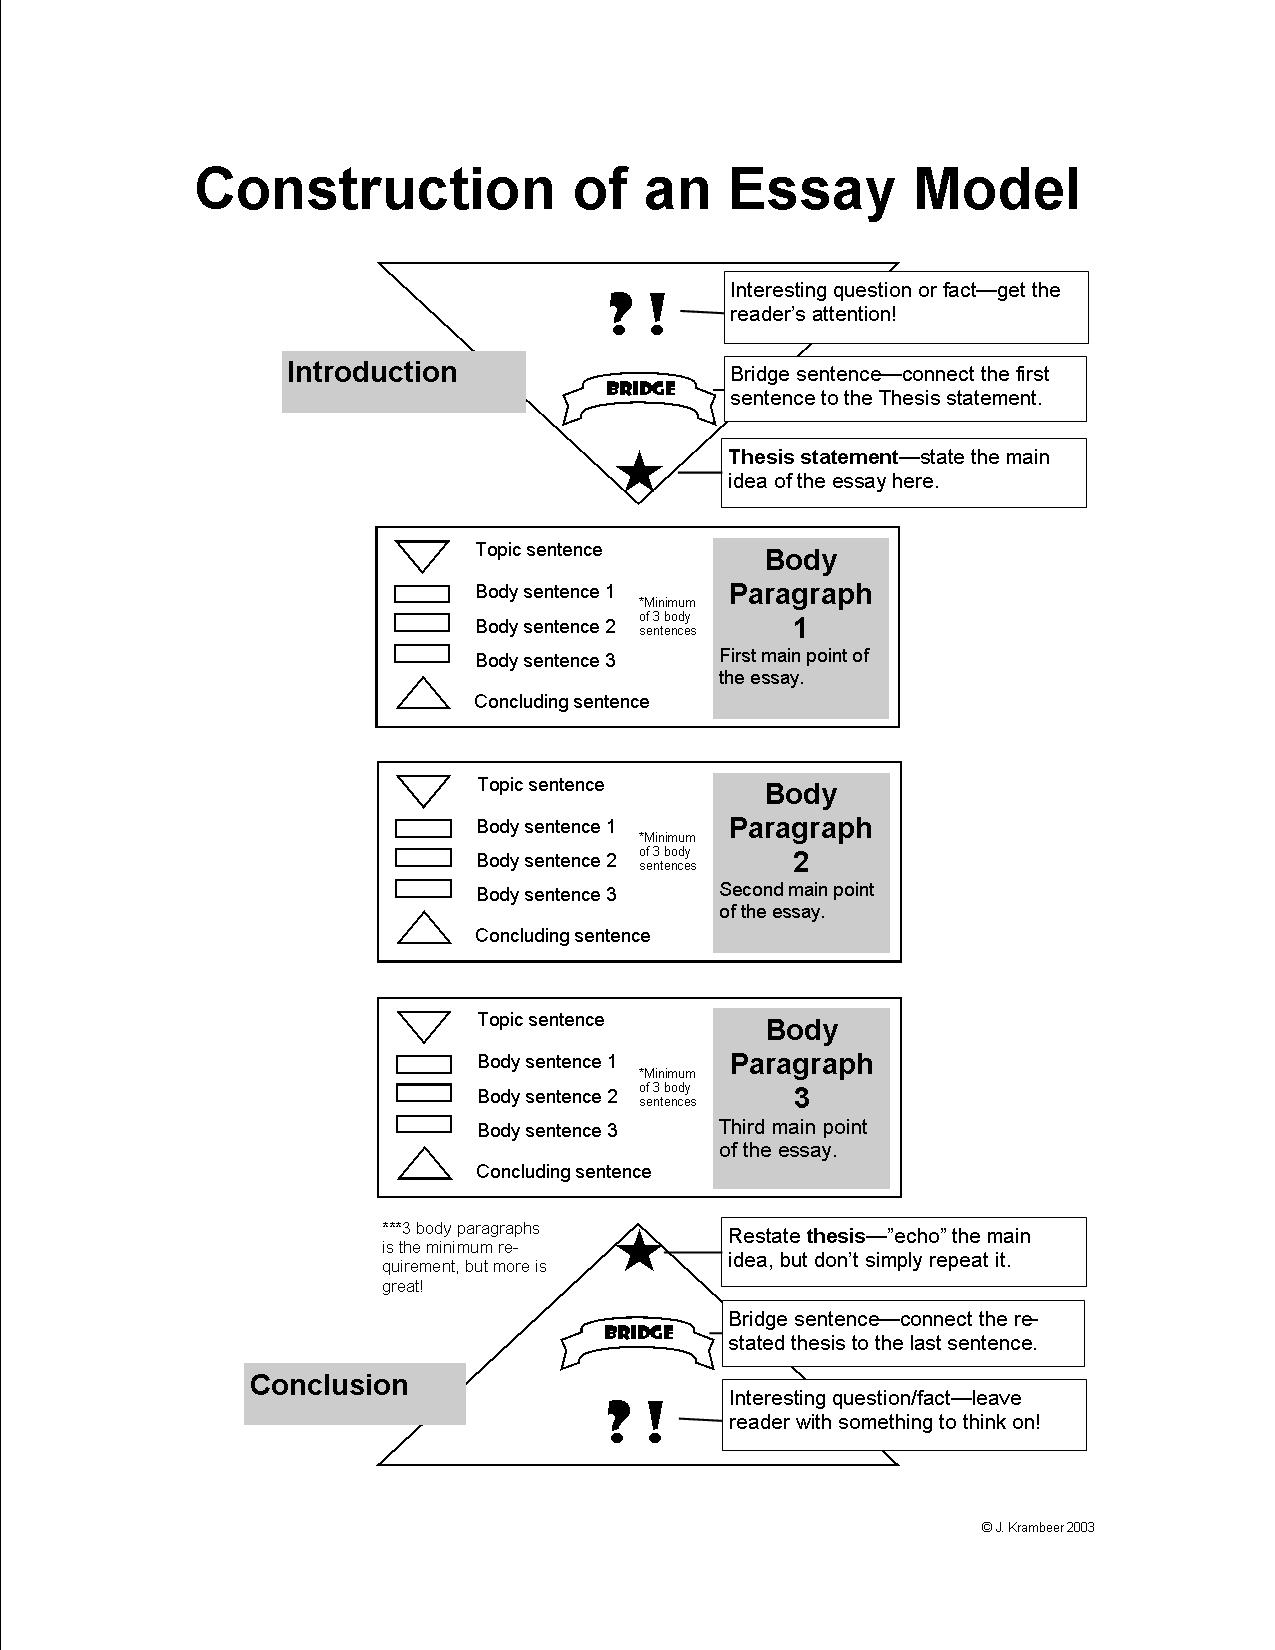 model english essays model essay oglasi english sample essays model essay oglasi coschool is cool essay modelessay model